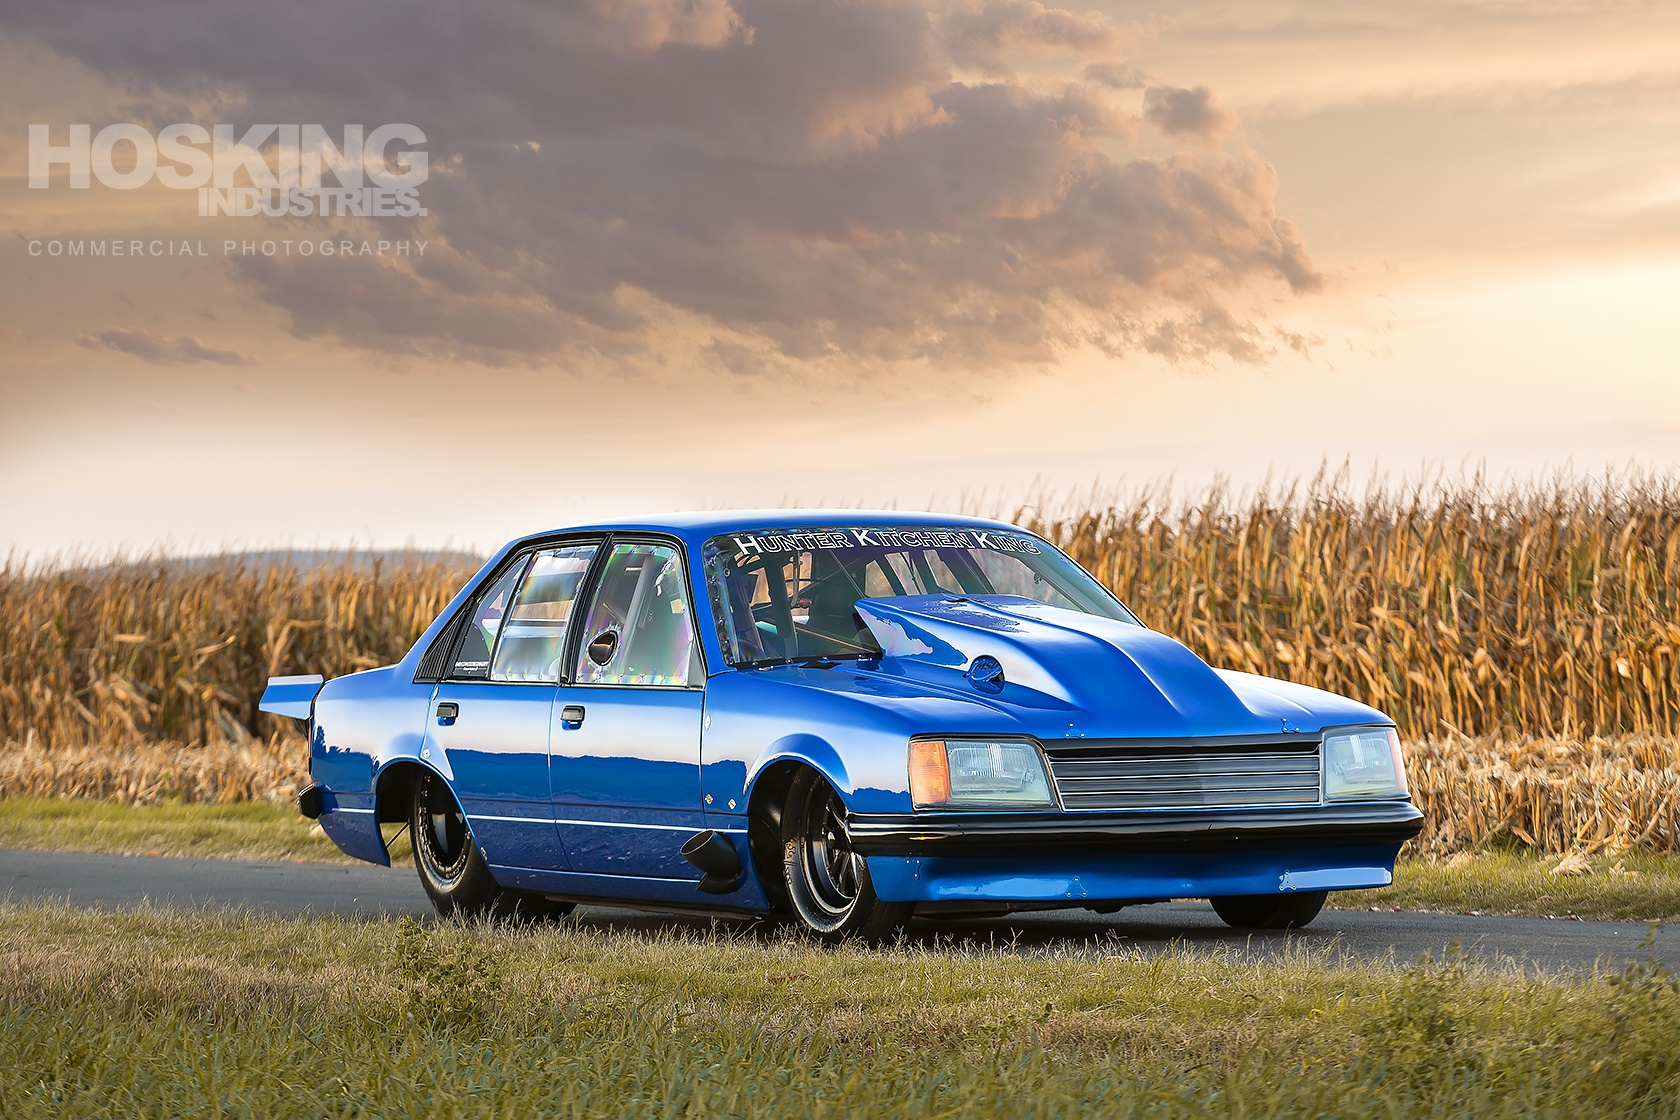 Jeremy Callaghan's Blue VC Commodore